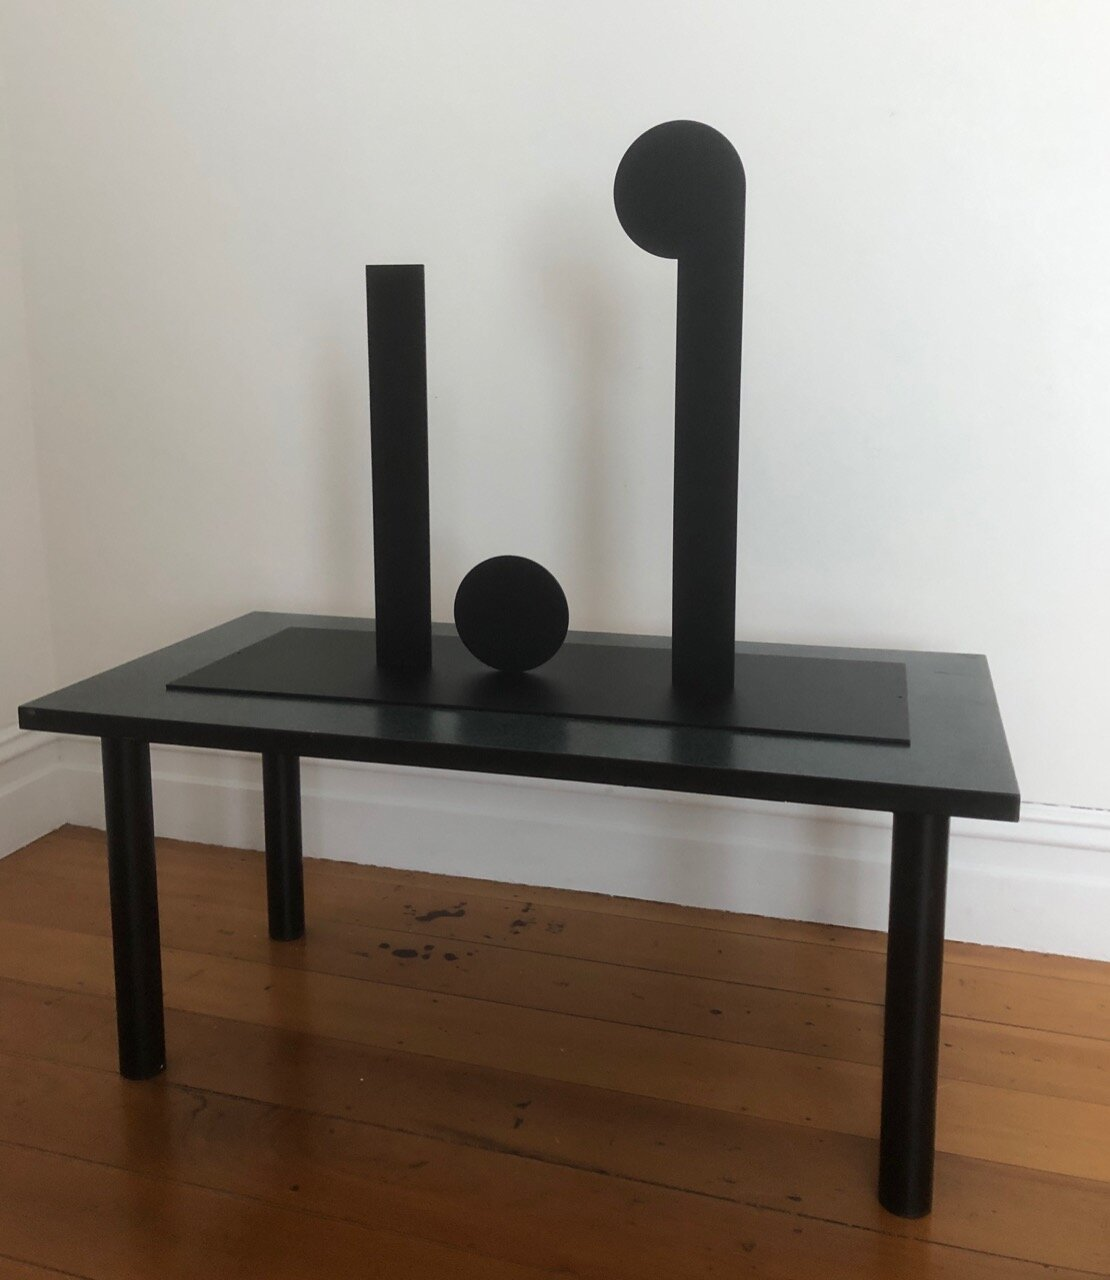 Wayne Youle  The crack up , 2019 Powder coated silhouette steel 600 x 800 x 300 mm Edition of 3  ______